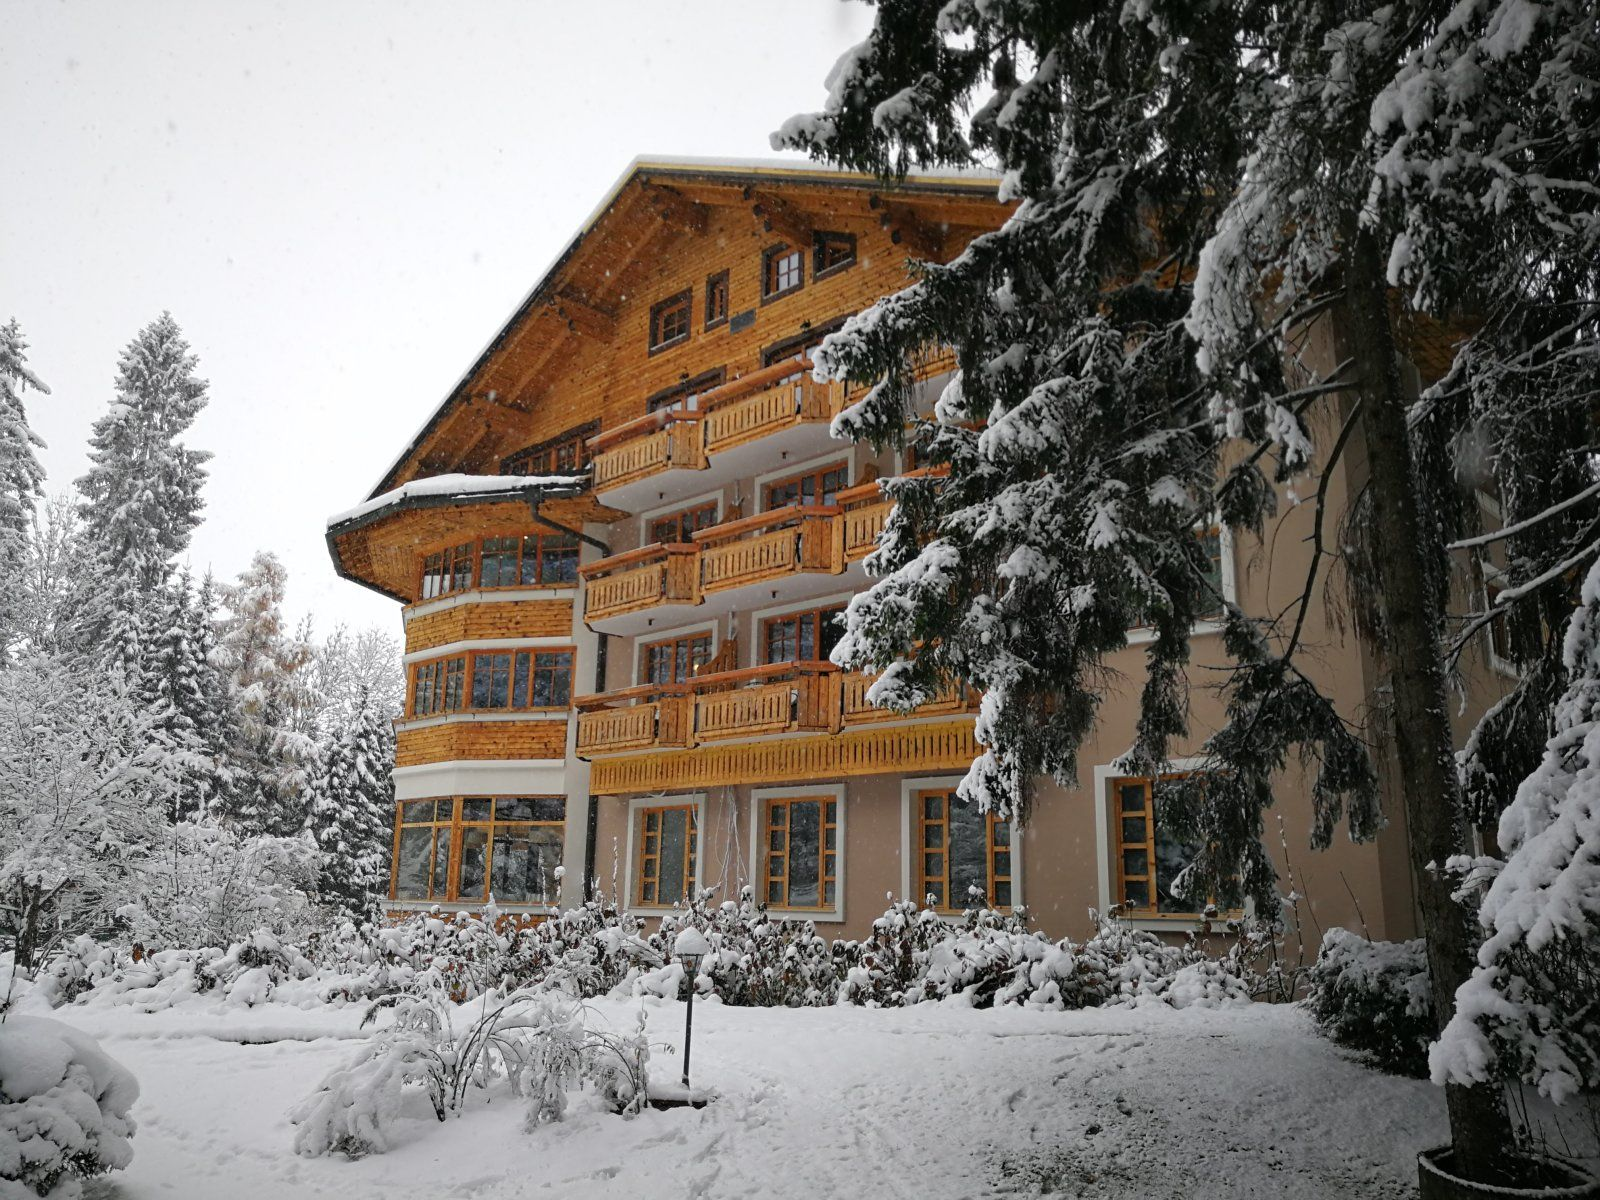 5 Days Ski Safari - 14 Ski Resorts Bled, Slovenia #6bed11a3-421f-4492-84da-c94d845f83df